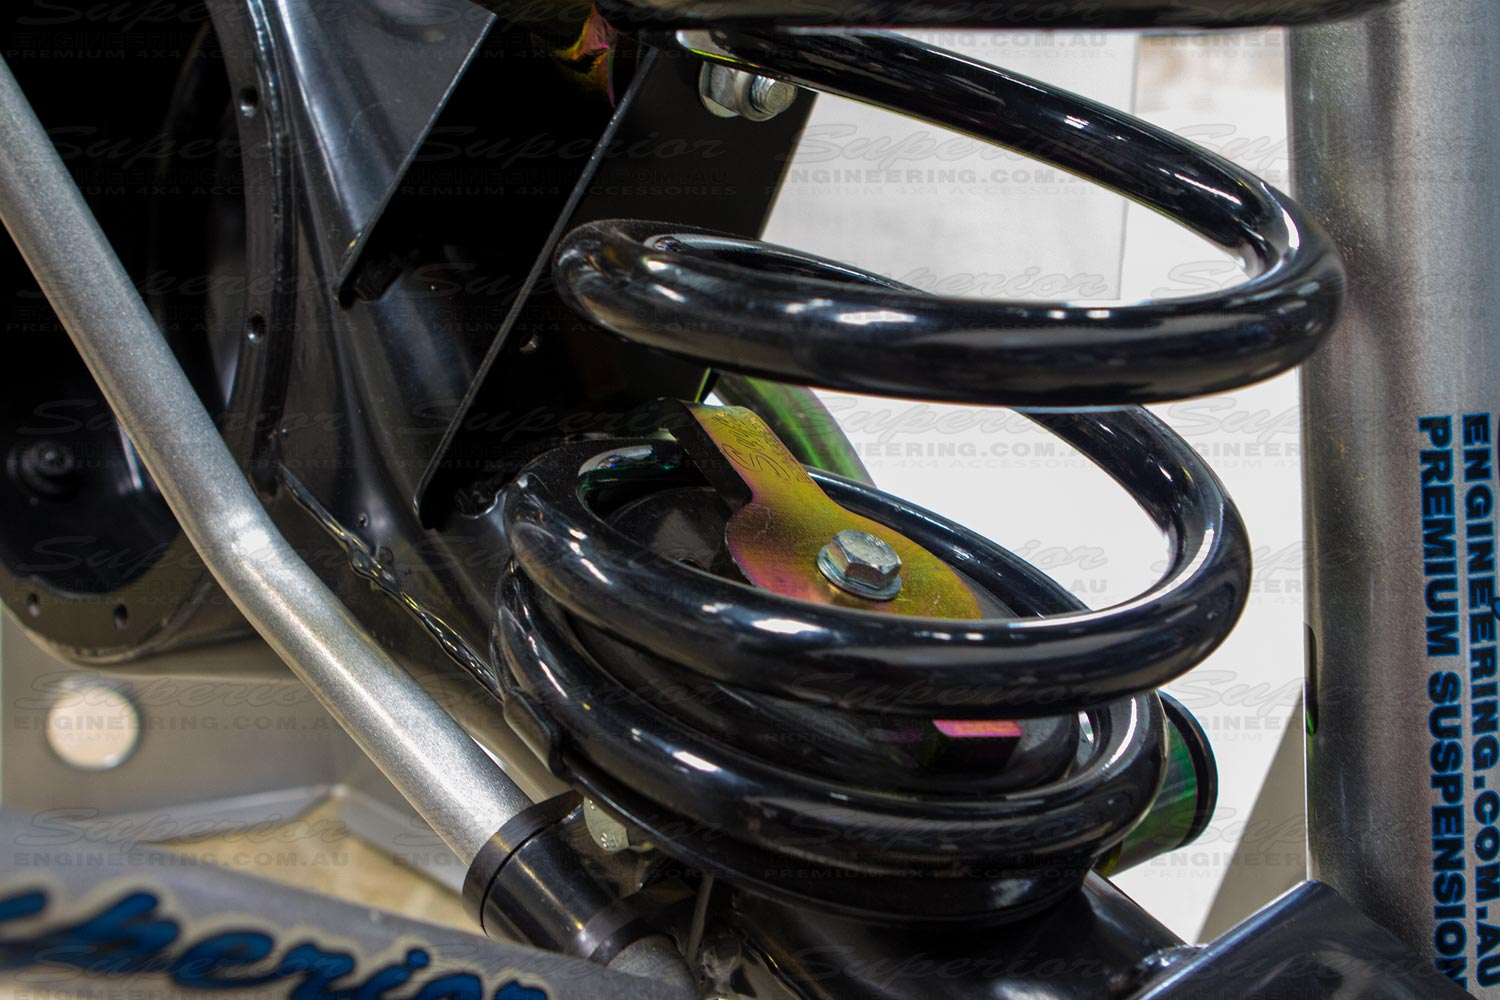 Closeup view of the Coil Retainer installed and fitted to the chassis display diff holding down a black coil spring